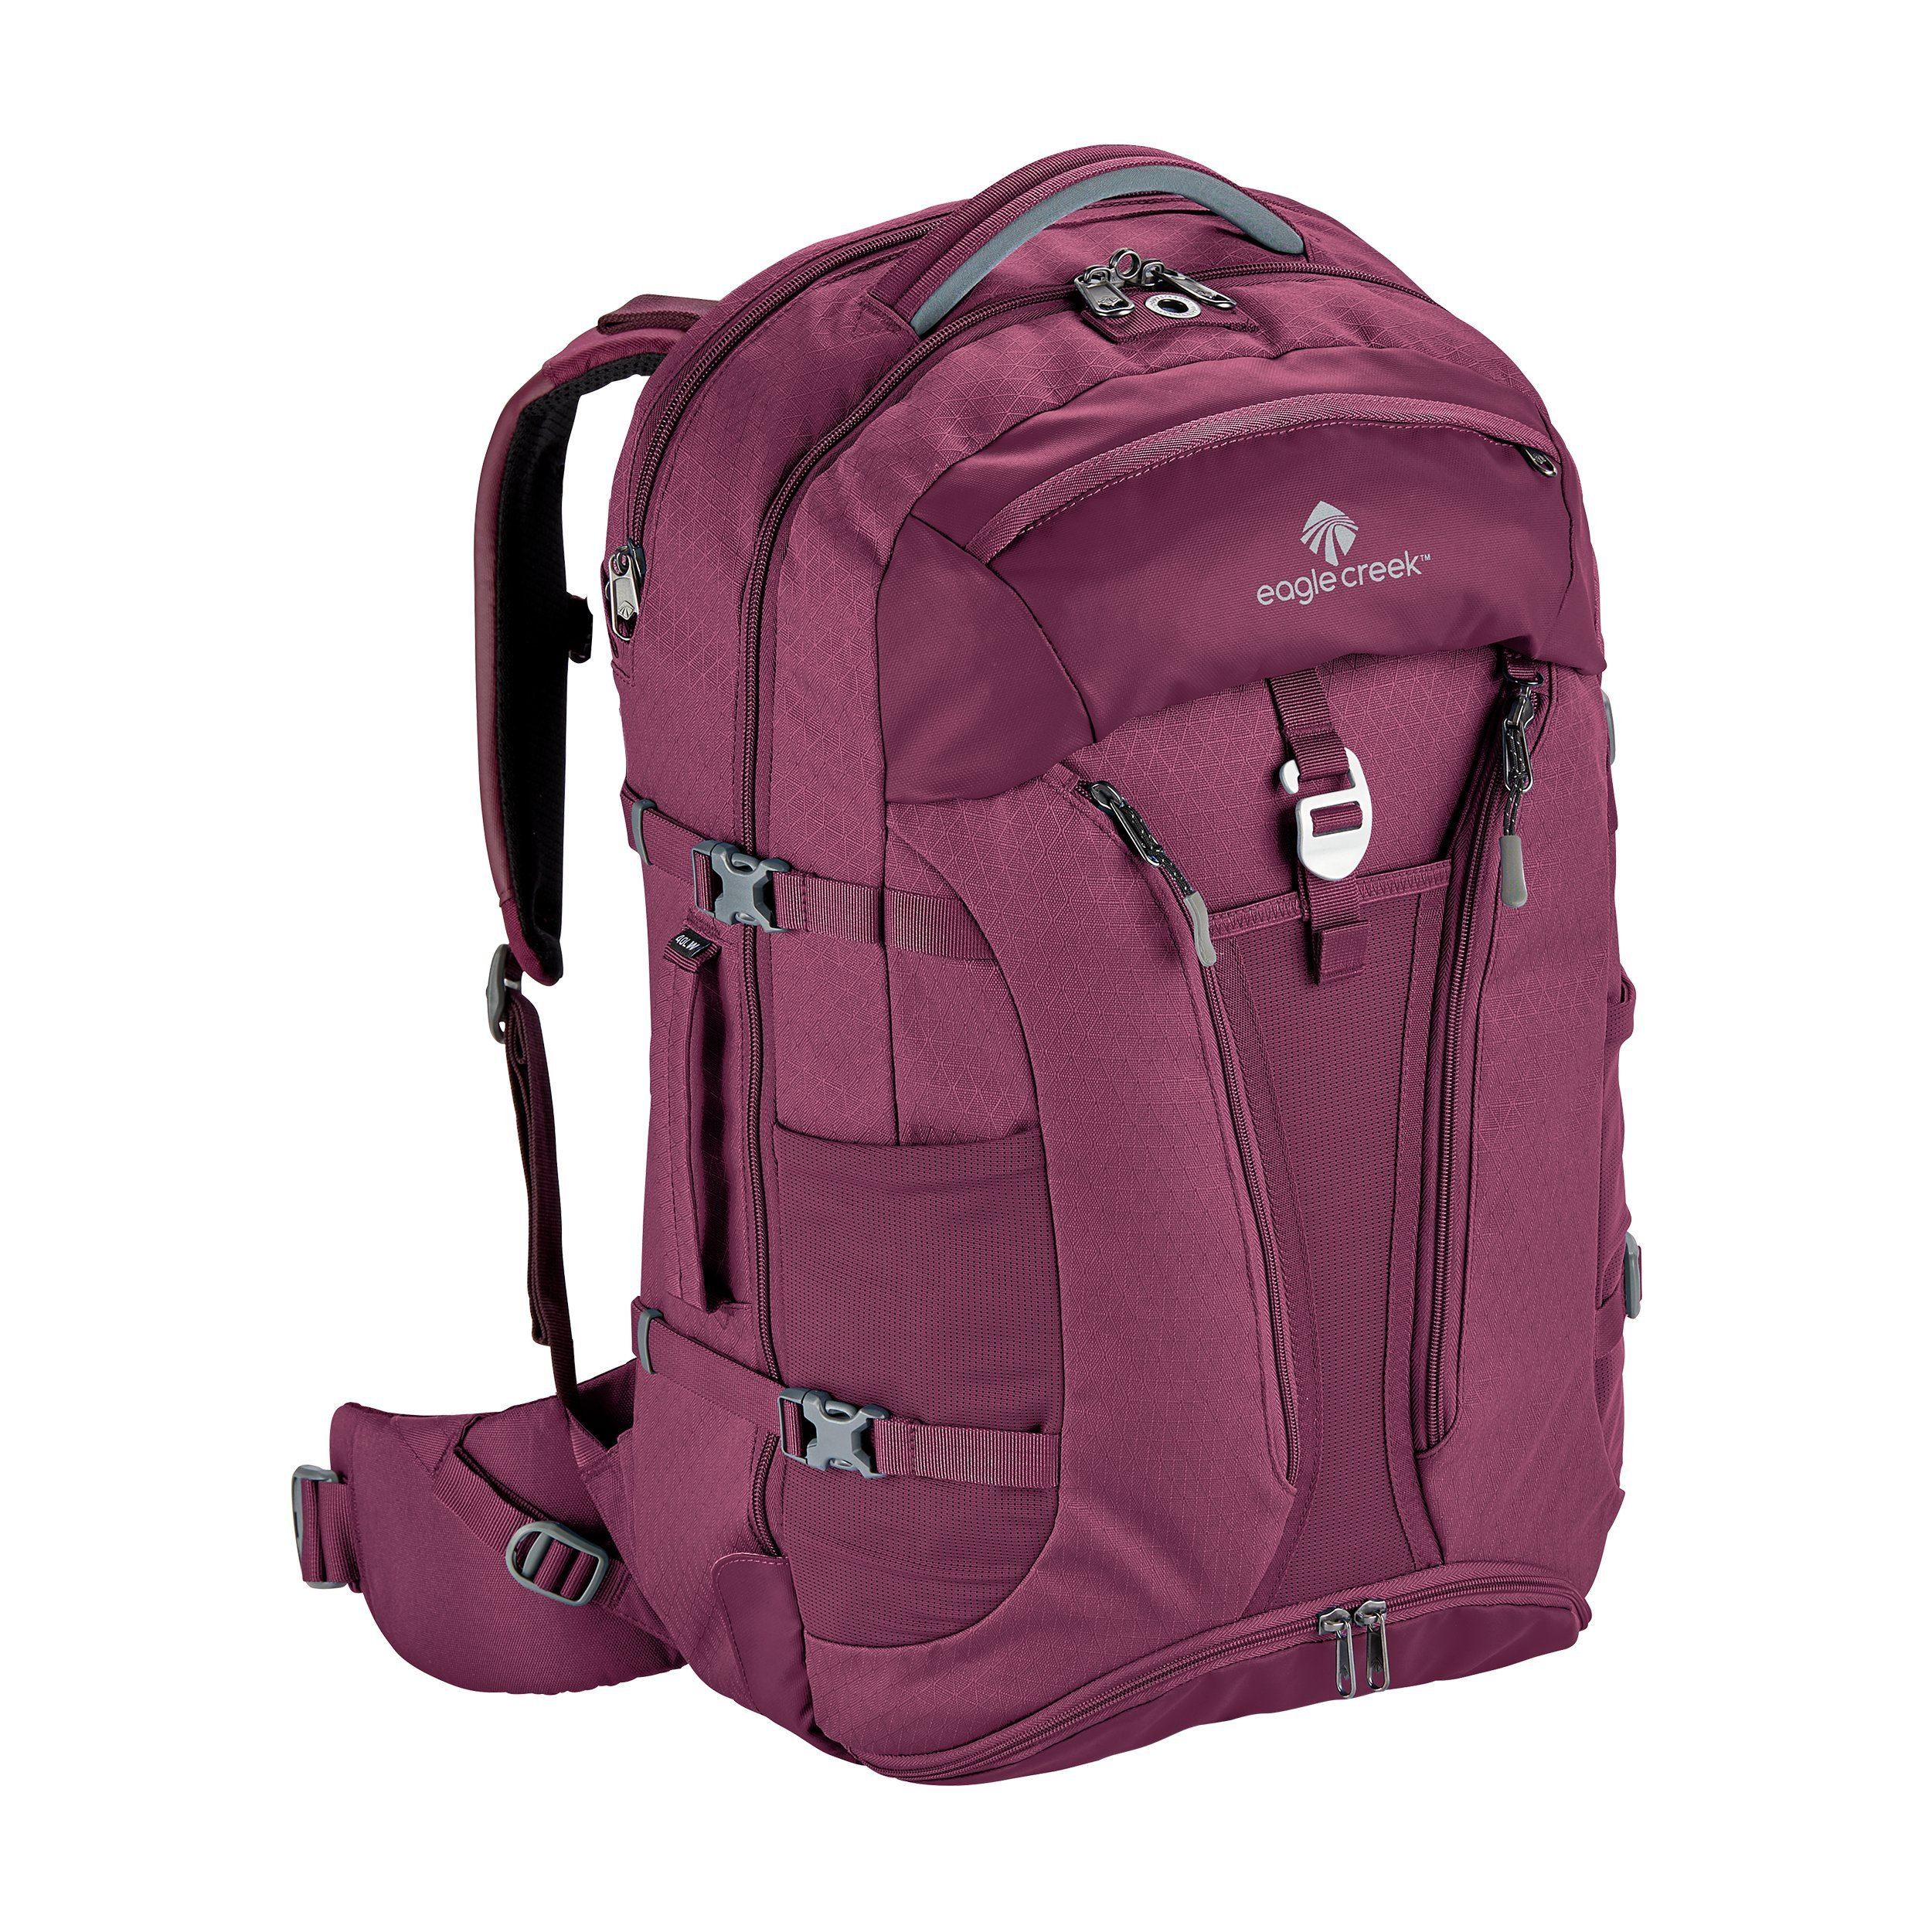 Eagle Creek Global Companion 40L Women's Backpack Travel Water Resistant Mulituse-17in Laptop Carry-On Luggage, Concord